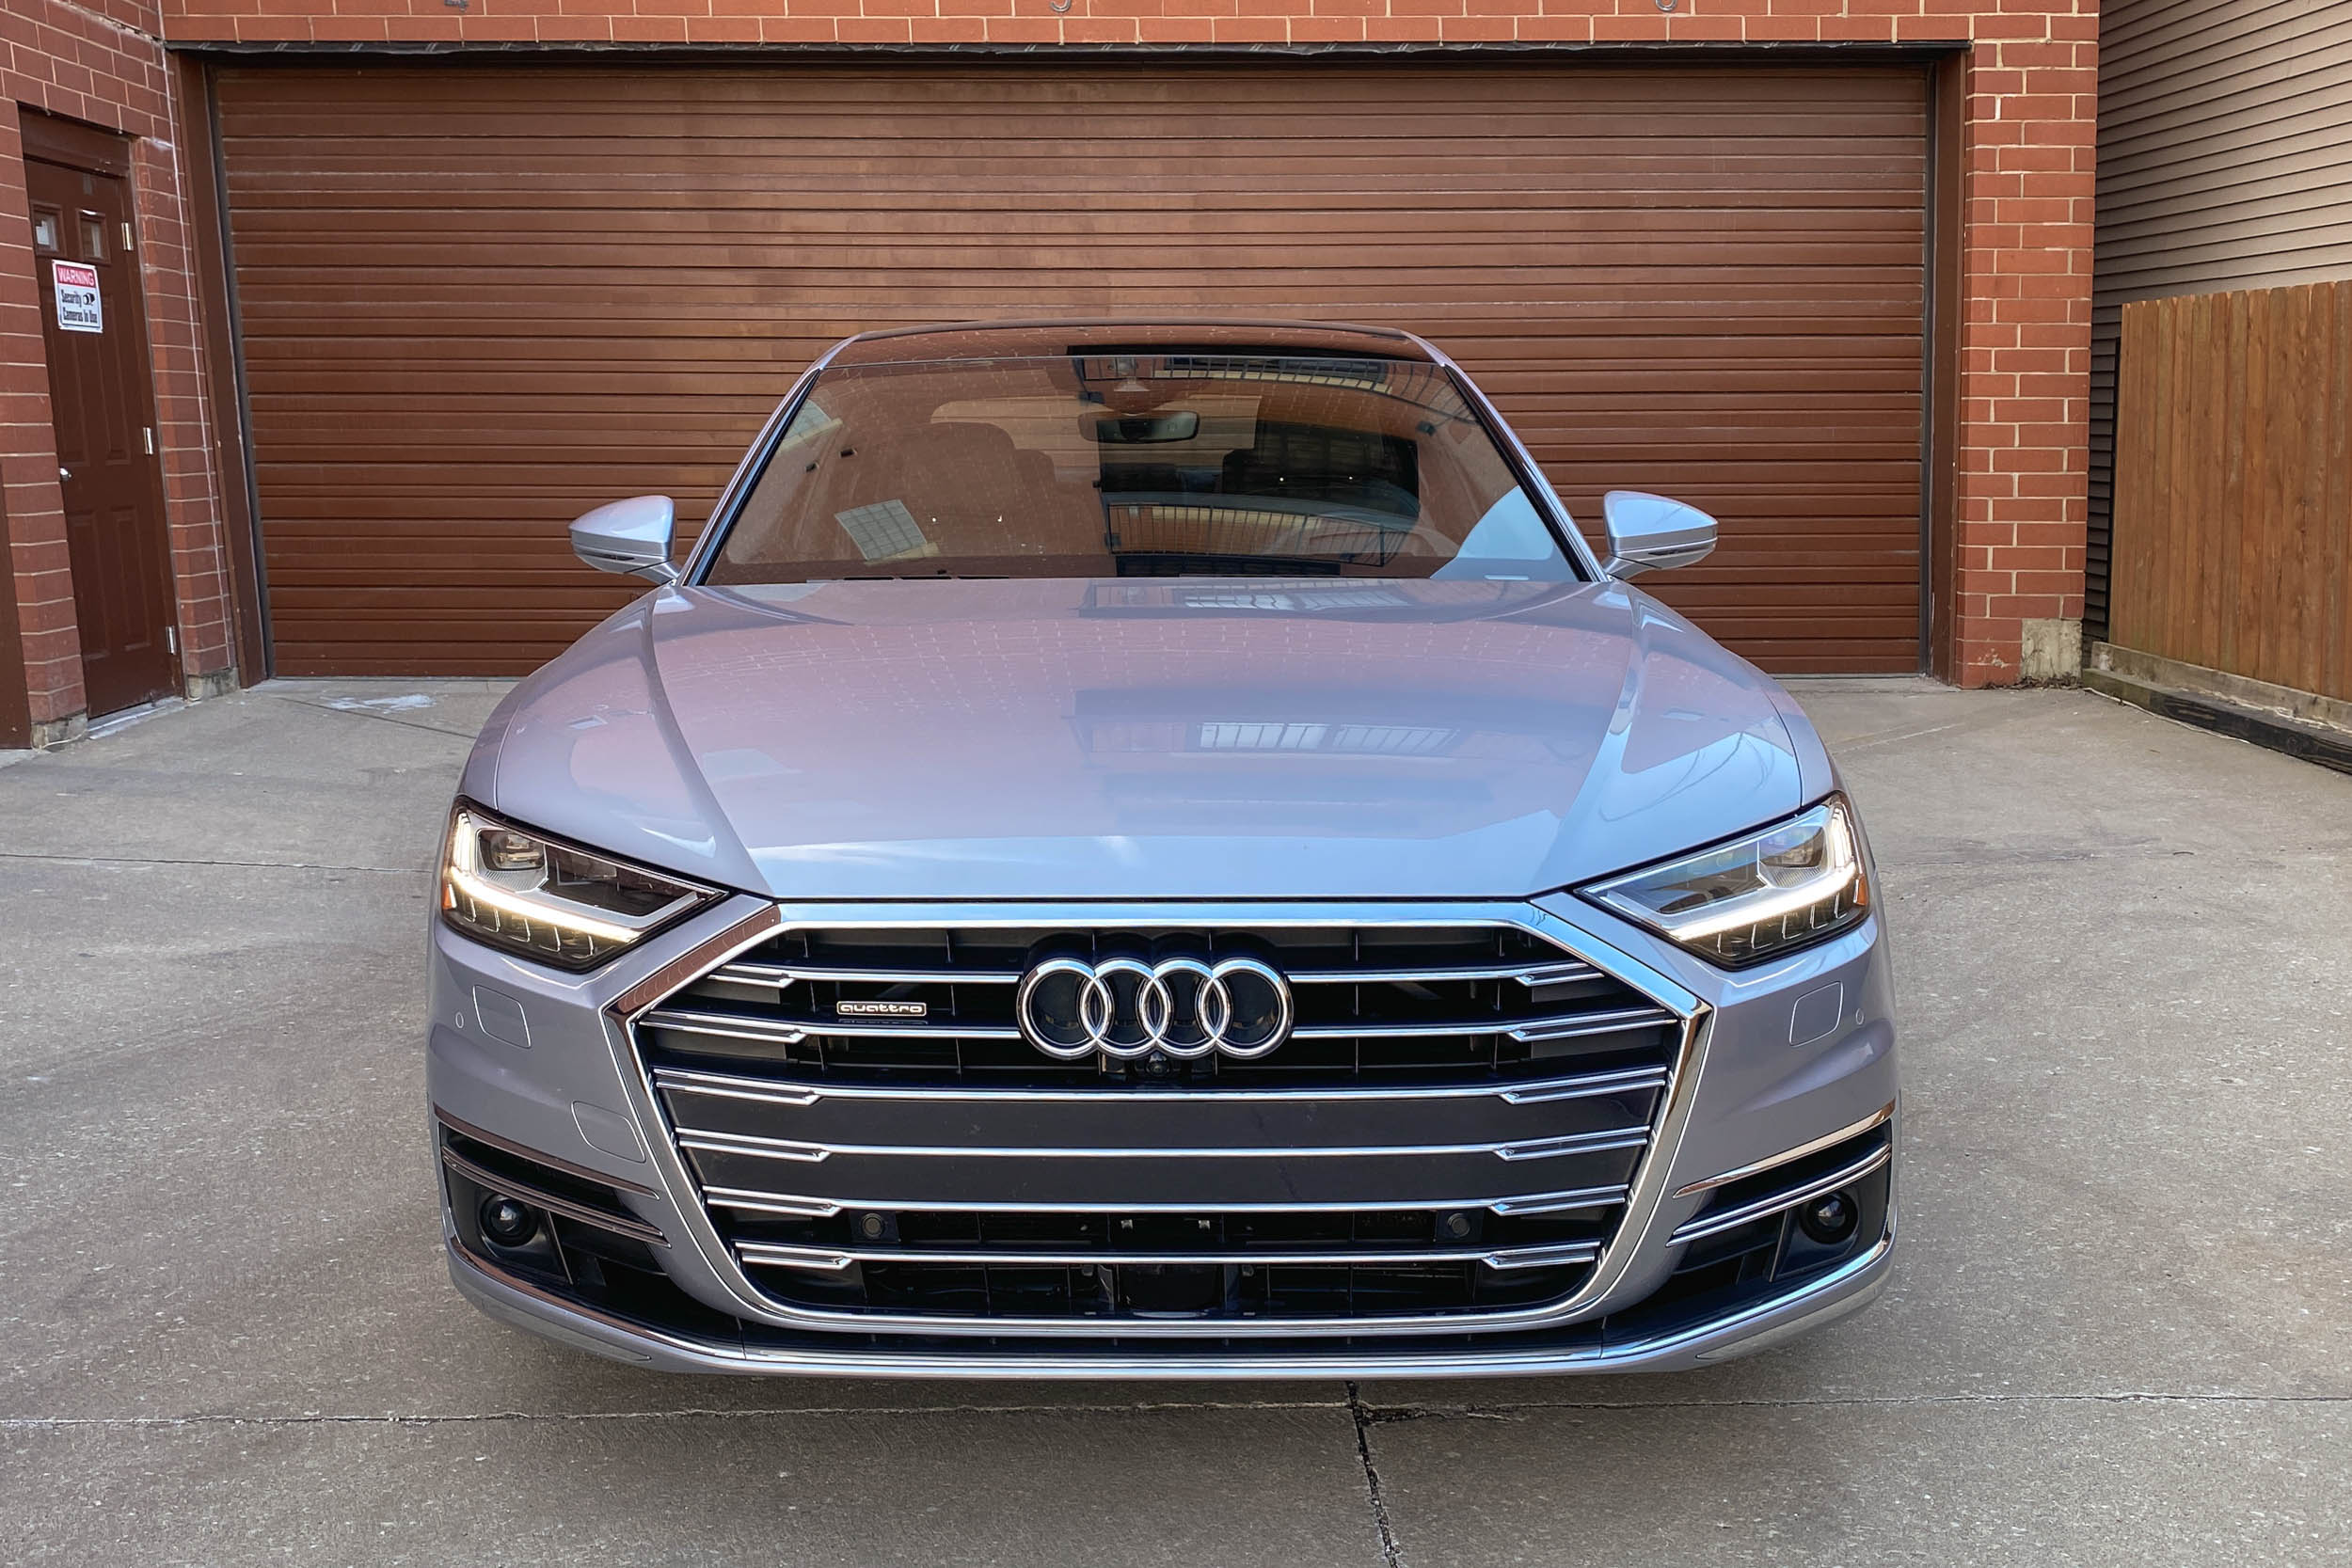 2019 Audi A8 L: High on luxury, low on sport - We Are ...